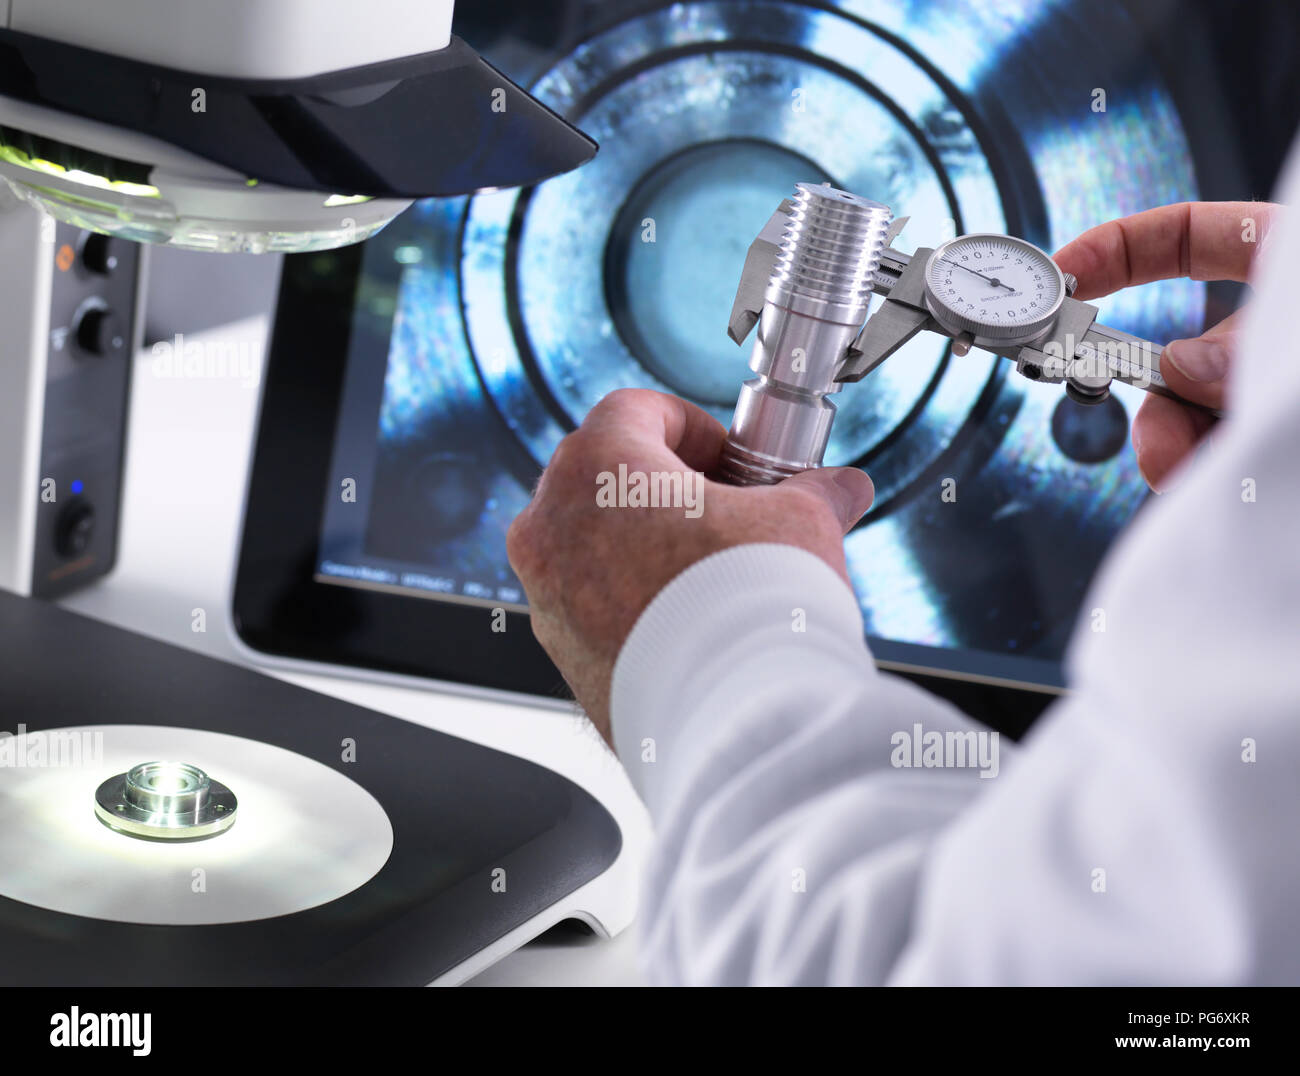 Engineer using a calliper and a 3d stereo microscope for quality control in the manufacturing of engineering components for industry - Stock Image